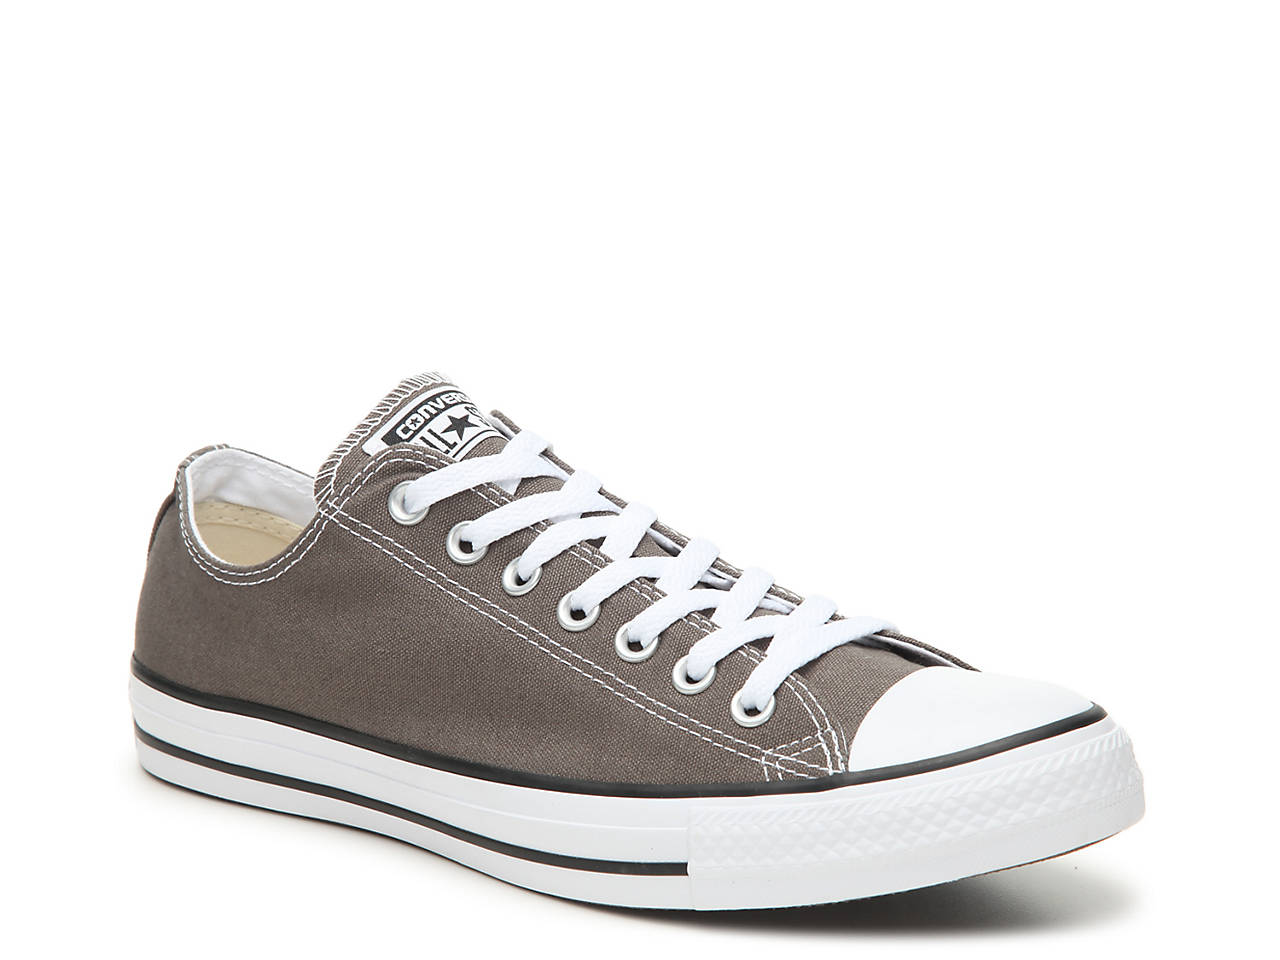 99fc63411331 Converse Chuck Taylor All Star Seasonal Ox Sneaker - Men s Men s ...